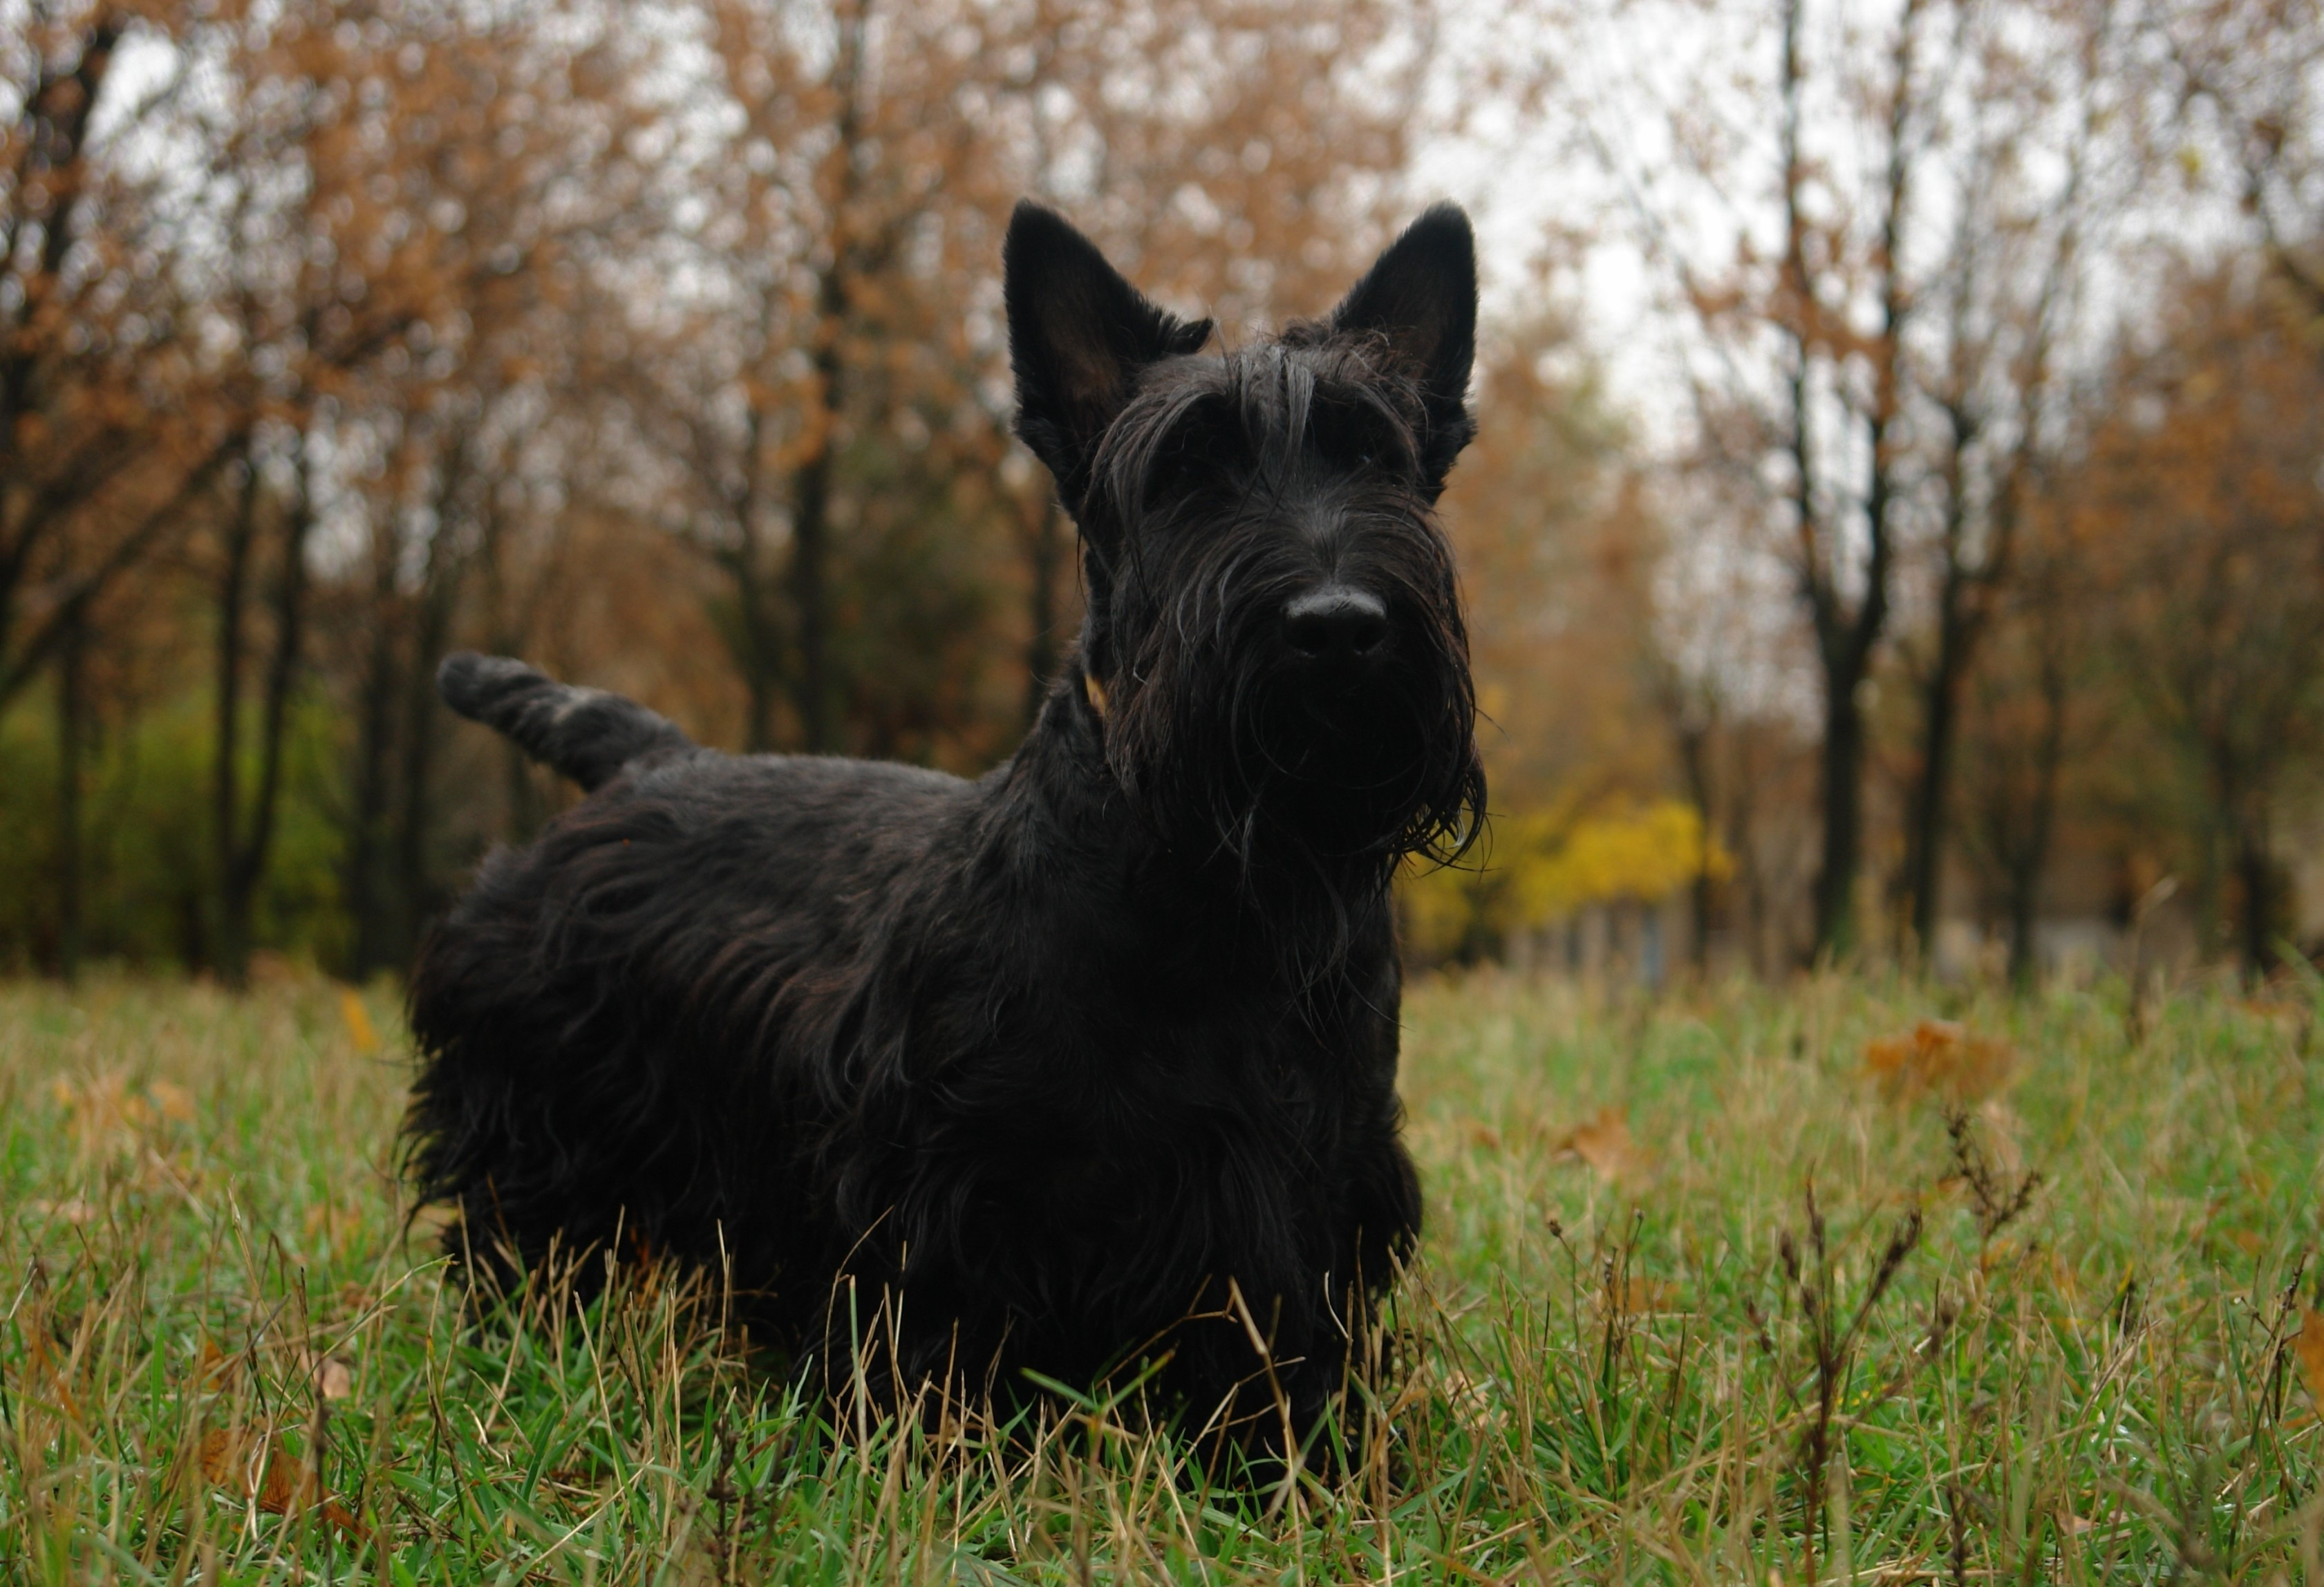 141258 download wallpaper Animals, Scotch Terrier, Grass, Dog, Stroll screensavers and pictures for free